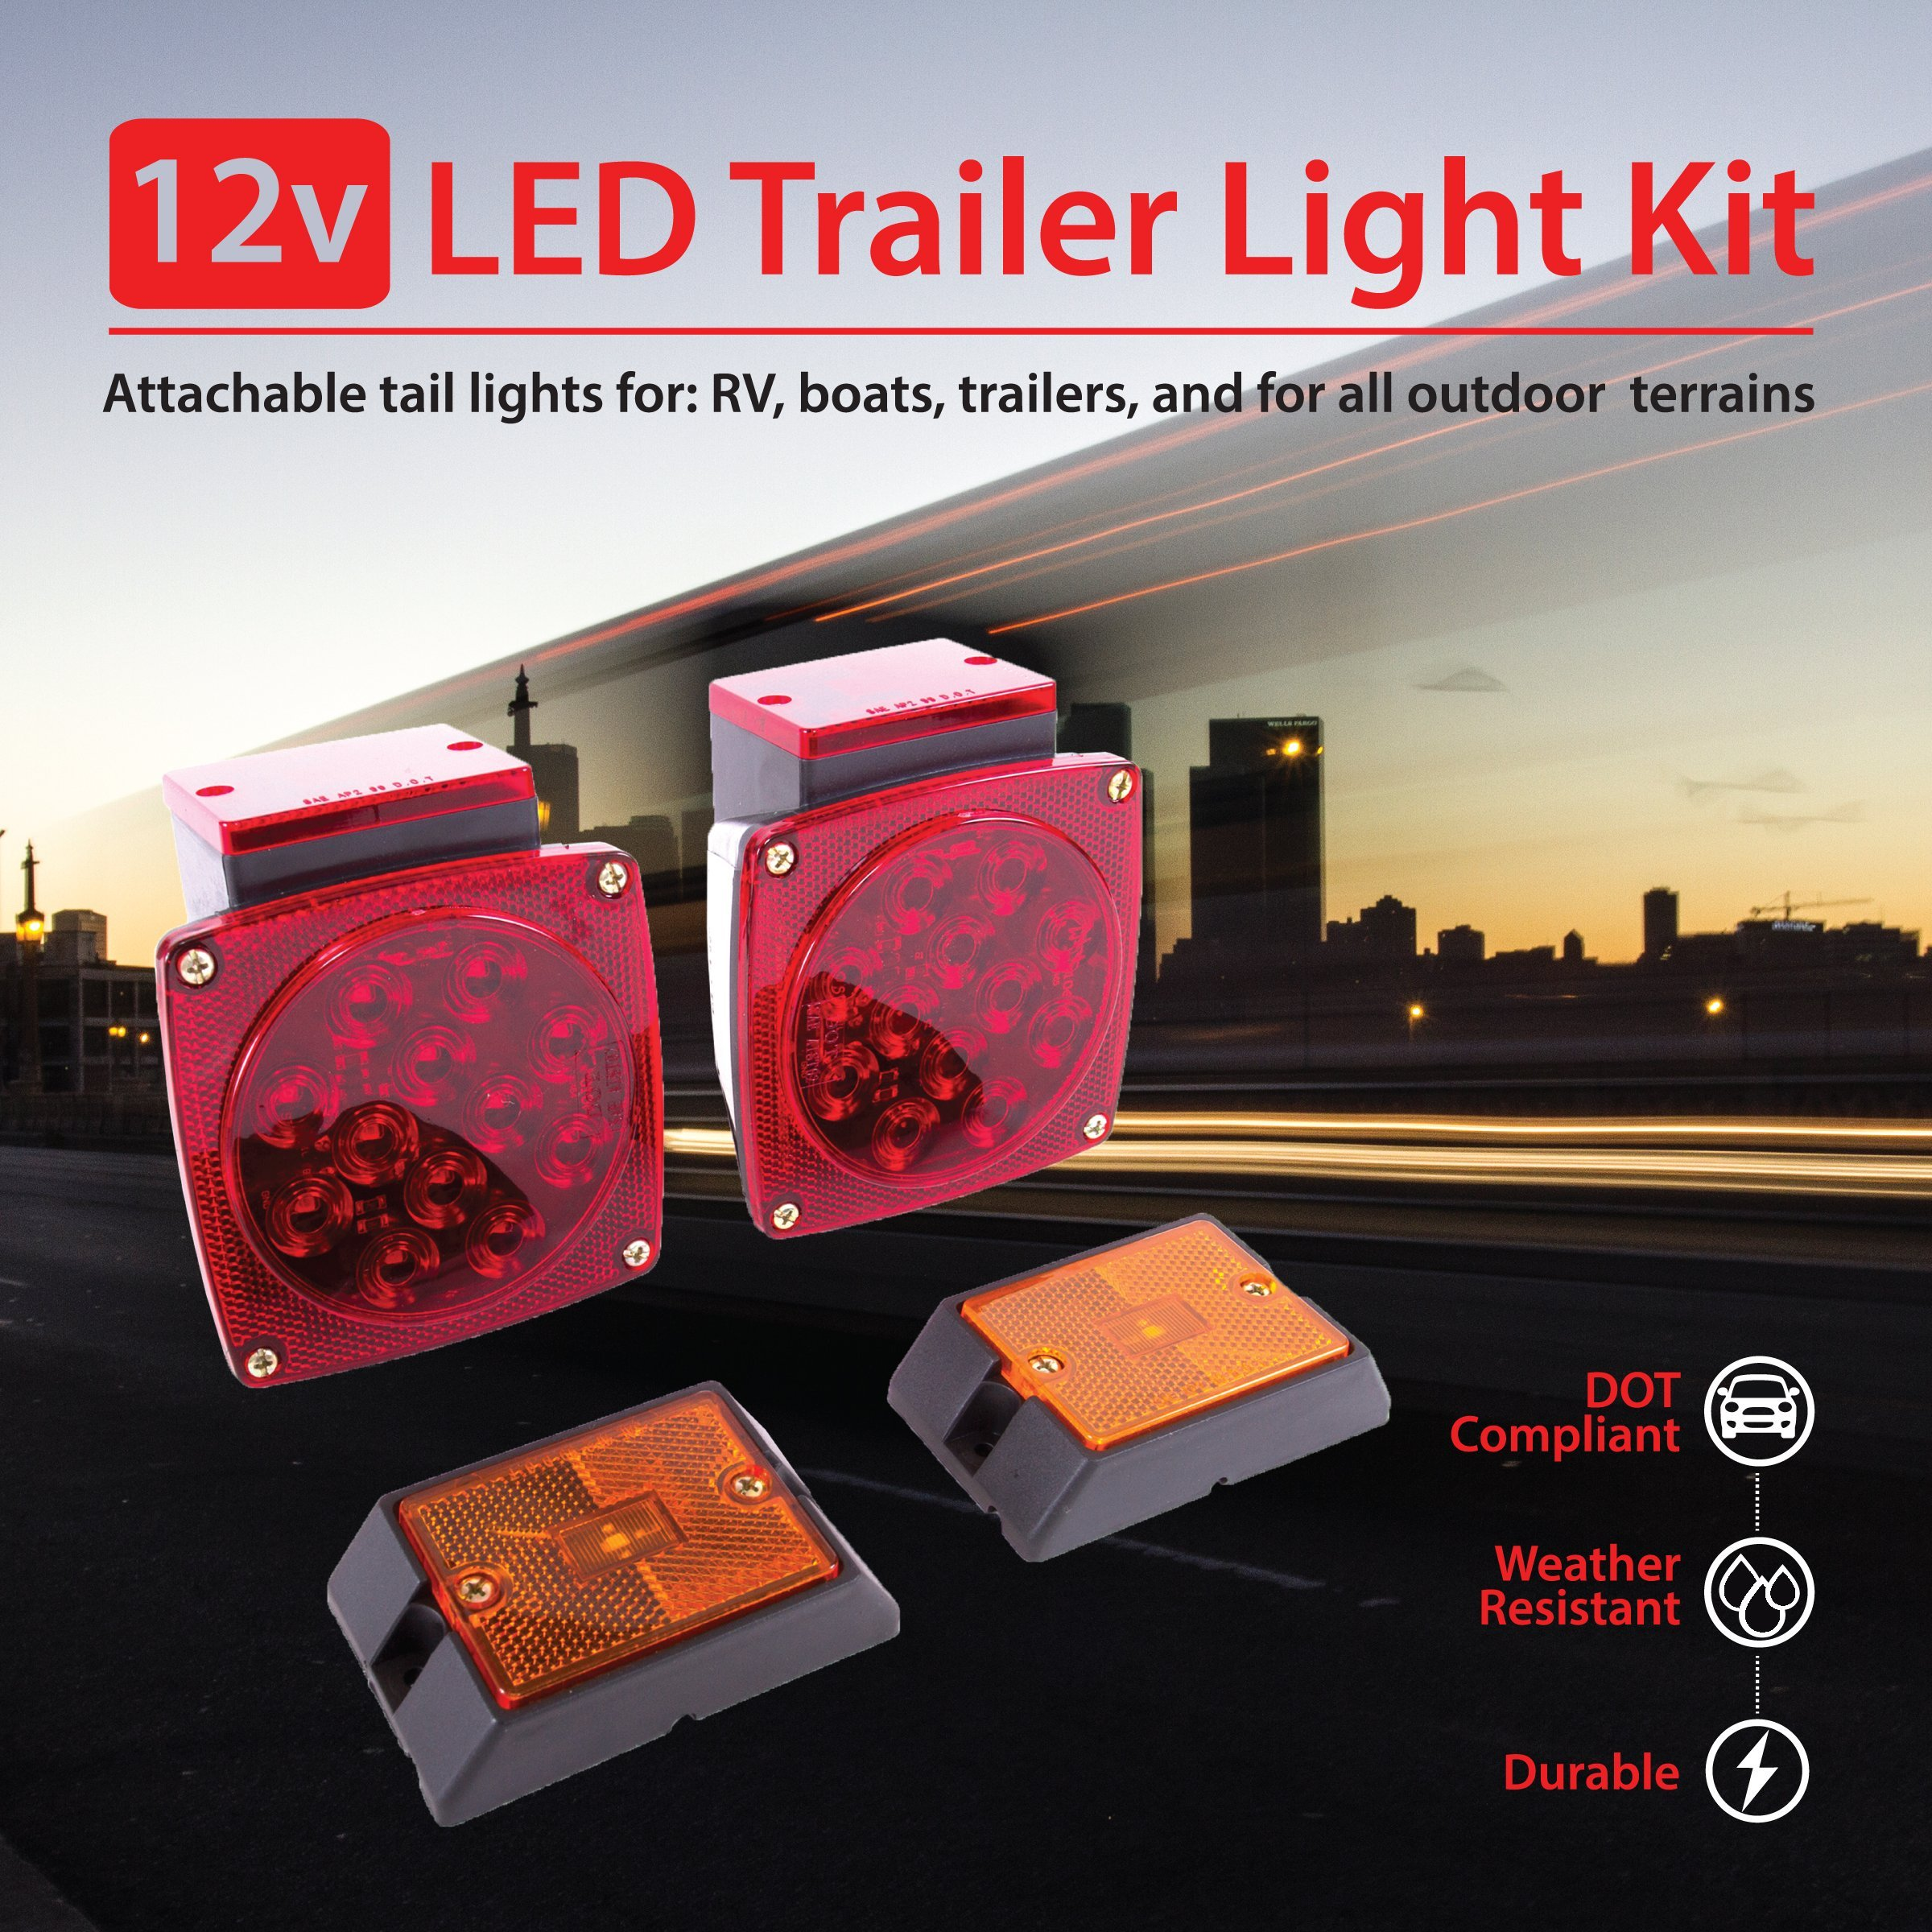 Wellmax 12v Led Trailer Light Kit Utility Bulbs For Easy Assembly Attwoodr 4way Flat Wiring Harness Vehicles And Trailers Submersible Tail Lights Rv Marine Boat All Outdoor Terrains